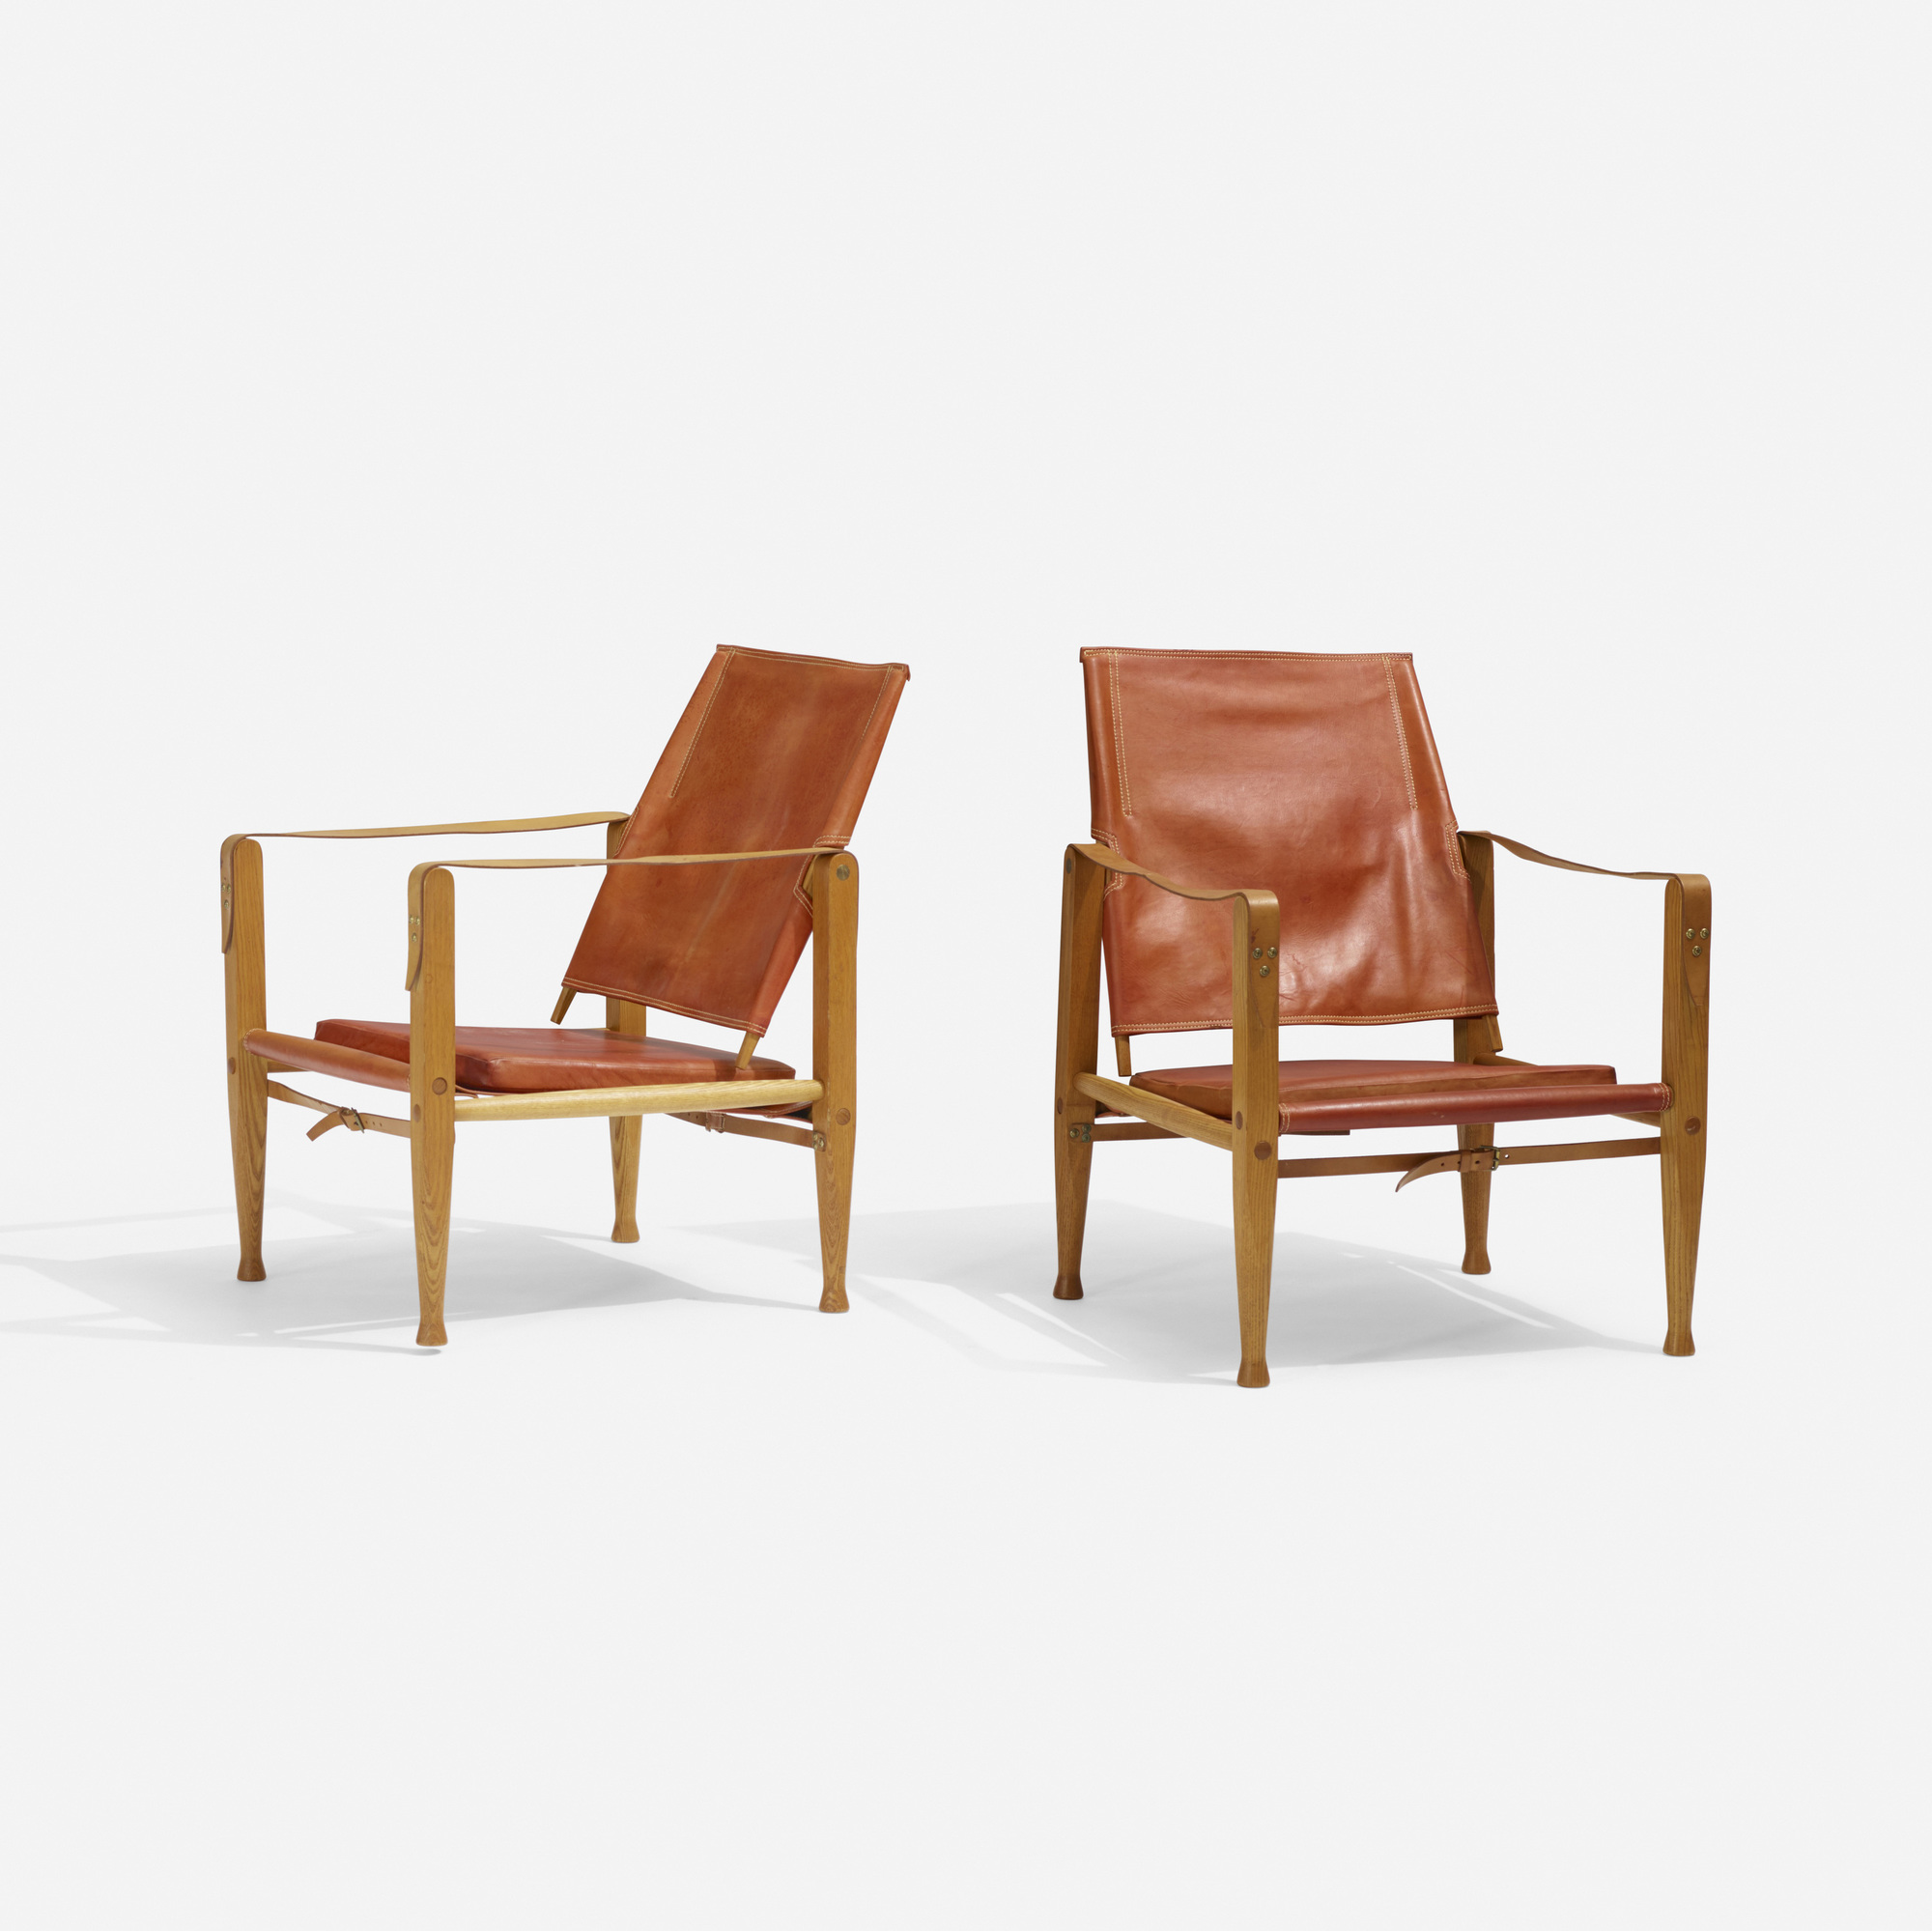 303: Kaare Klint / Safari chairs, pair (2 of 3)